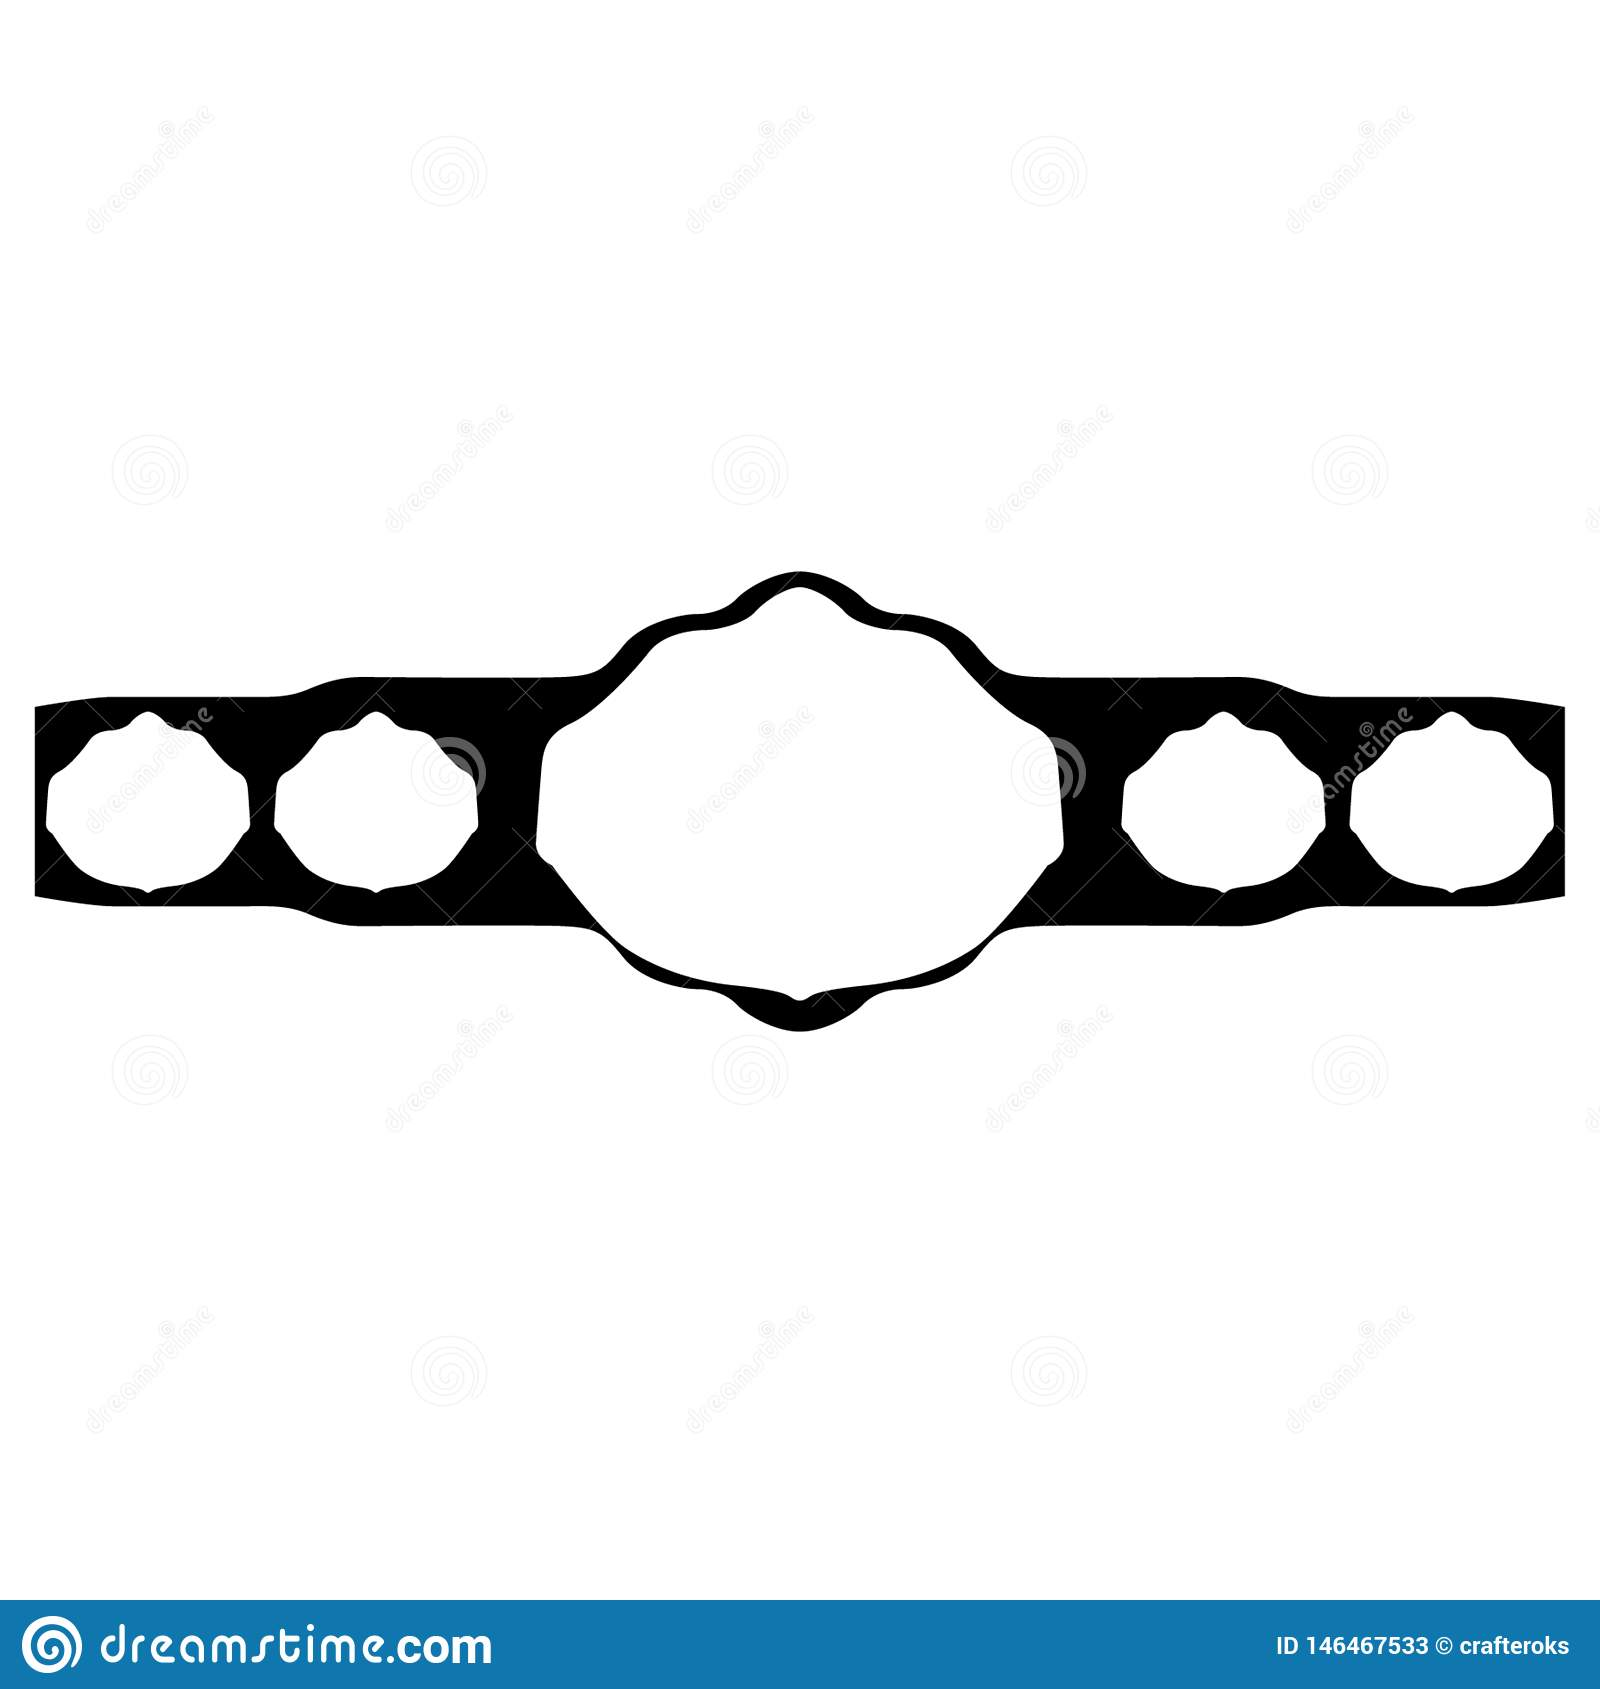 image regarding Printable Wrestling Belt Template named Championship Belt Hand Drawn Crafteroks Svg Totally free, Absolutely free Svg